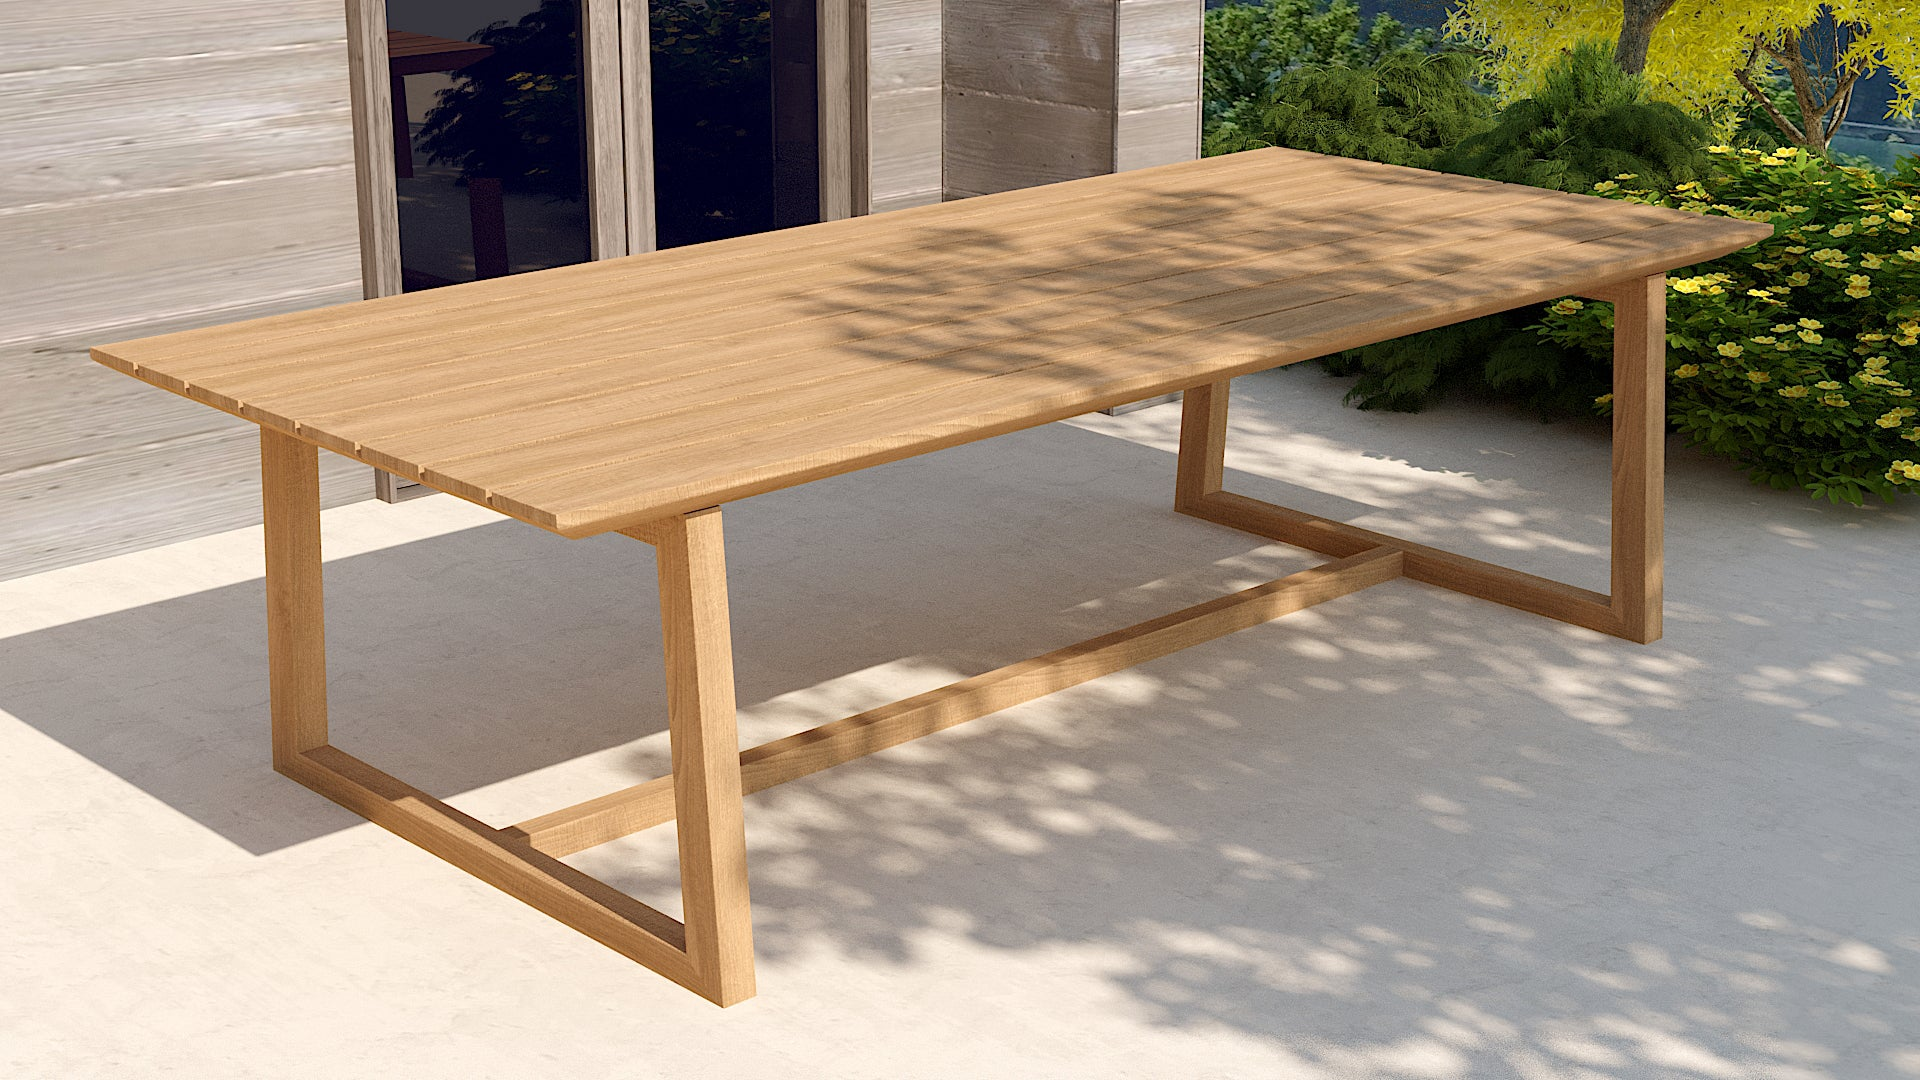 Belgravia teak rectangular table side view